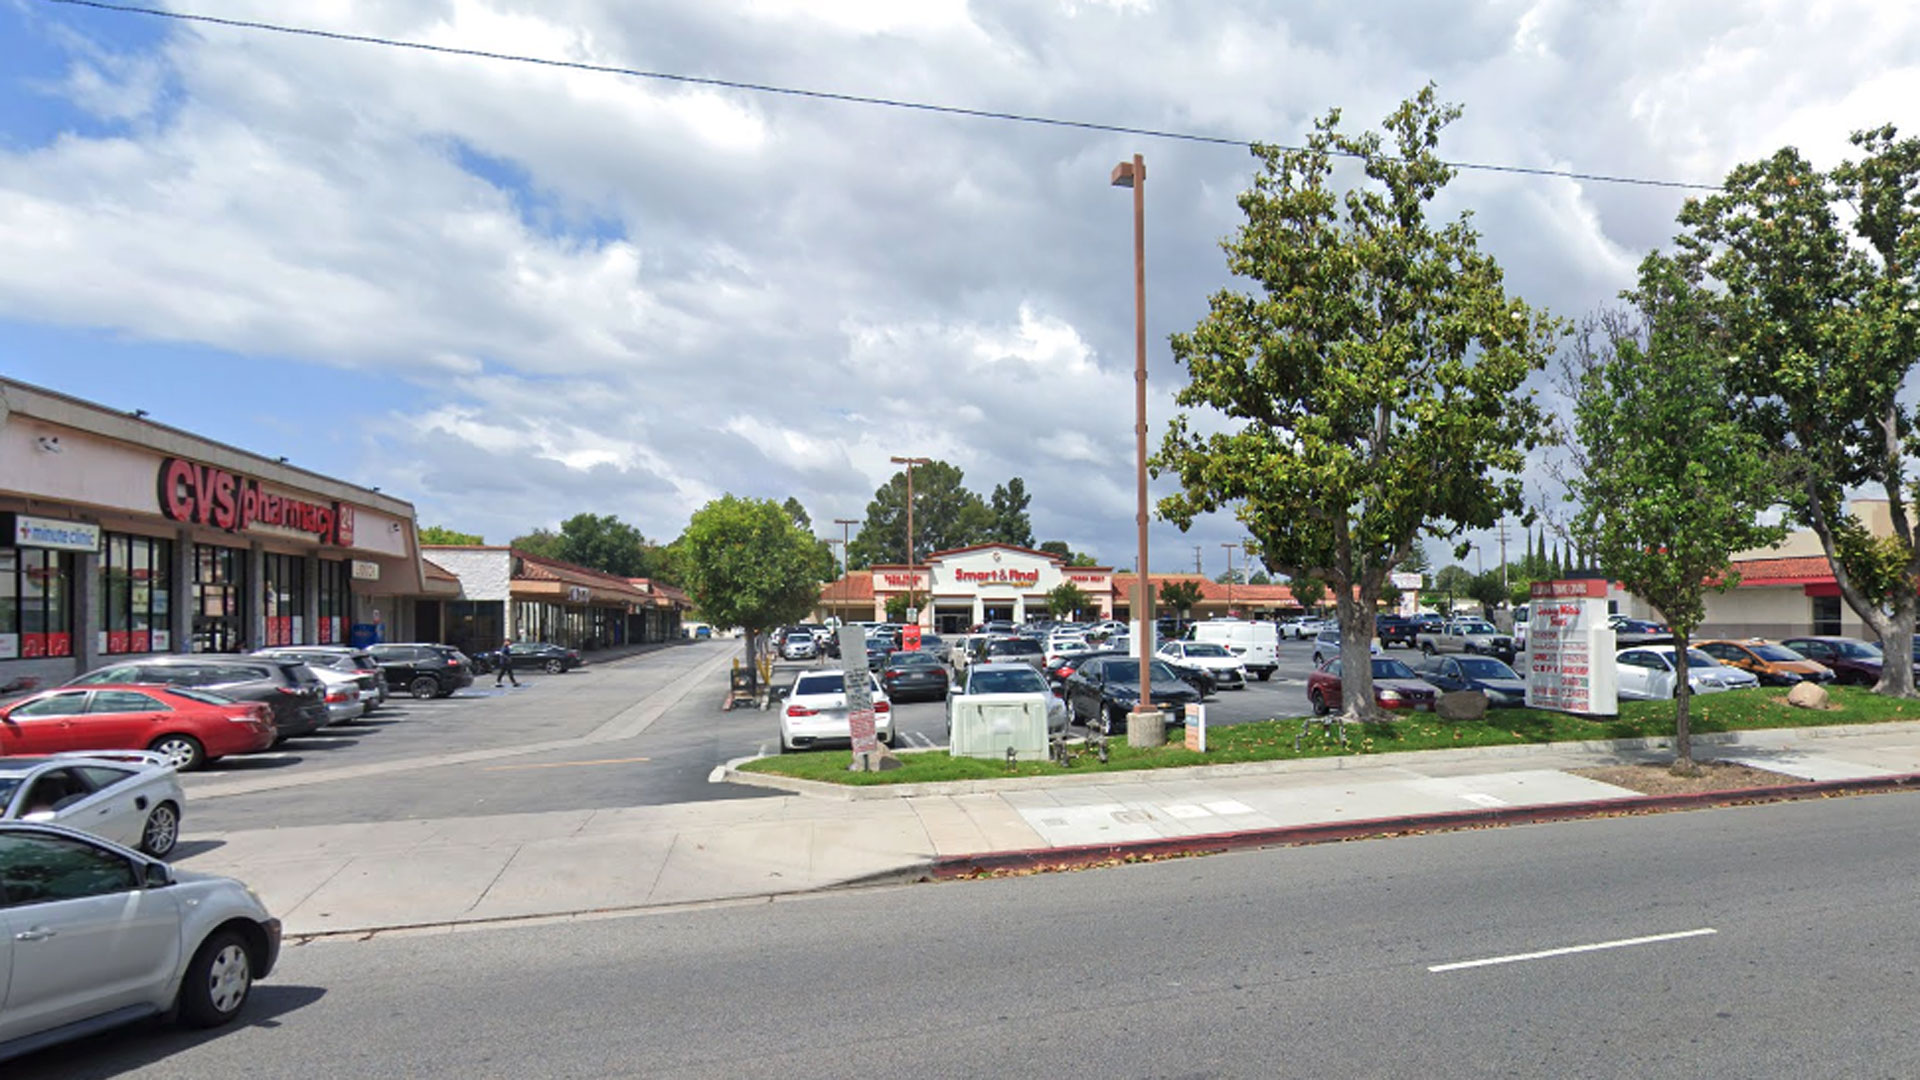 The CVS Pharmacy in Burbank. (Google Street View)